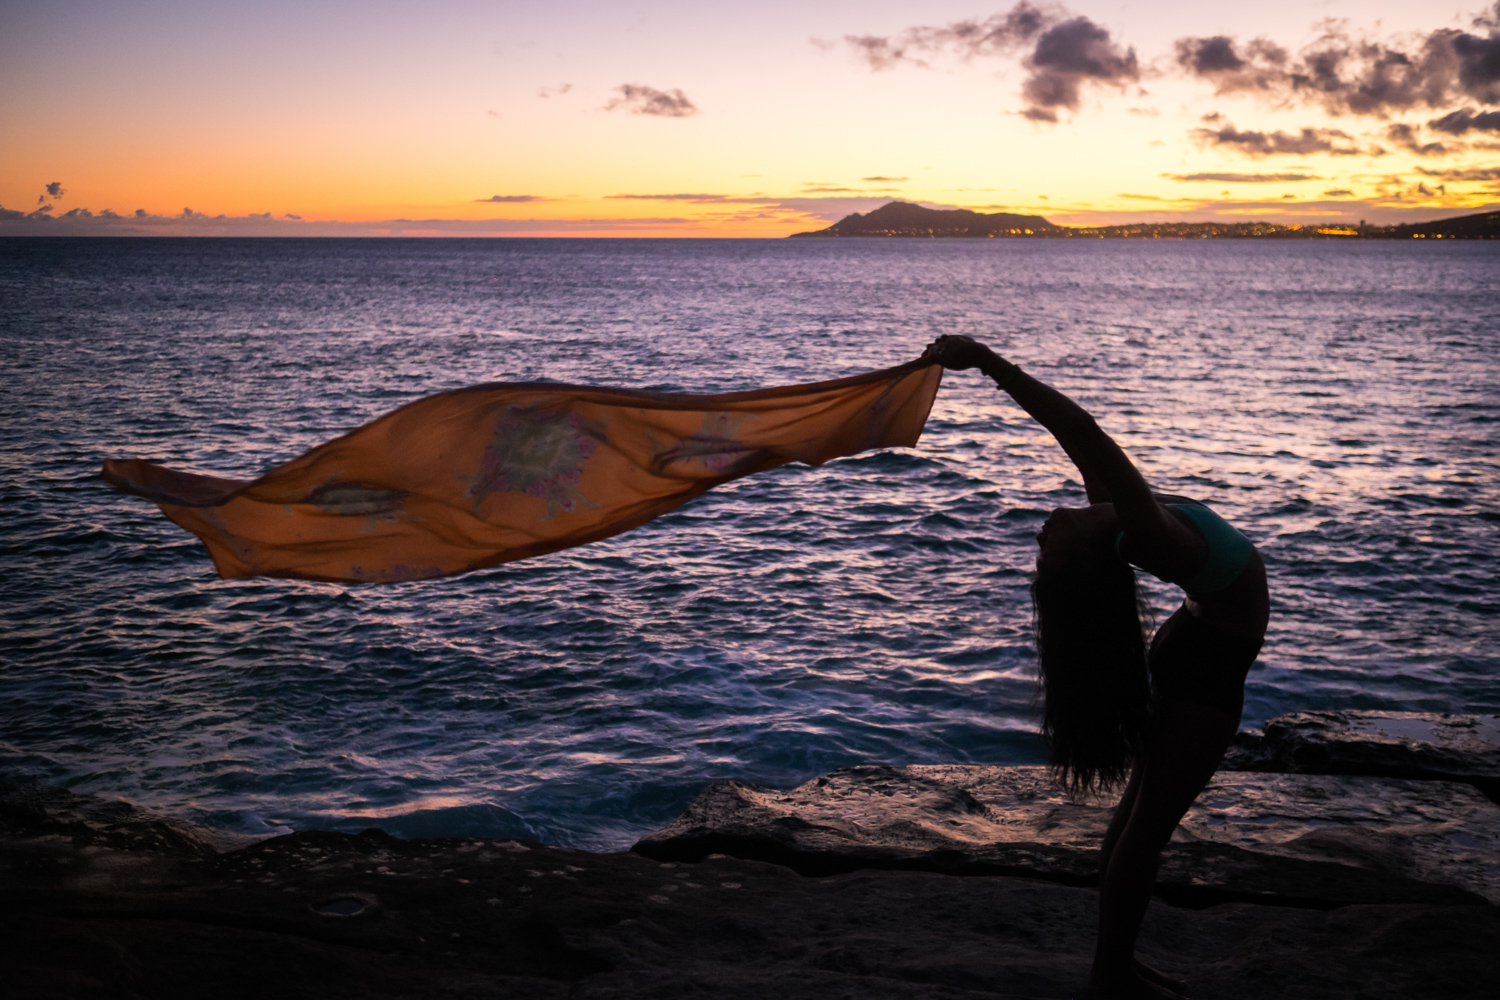 Yoga_Travel_Photographer_034.JPG